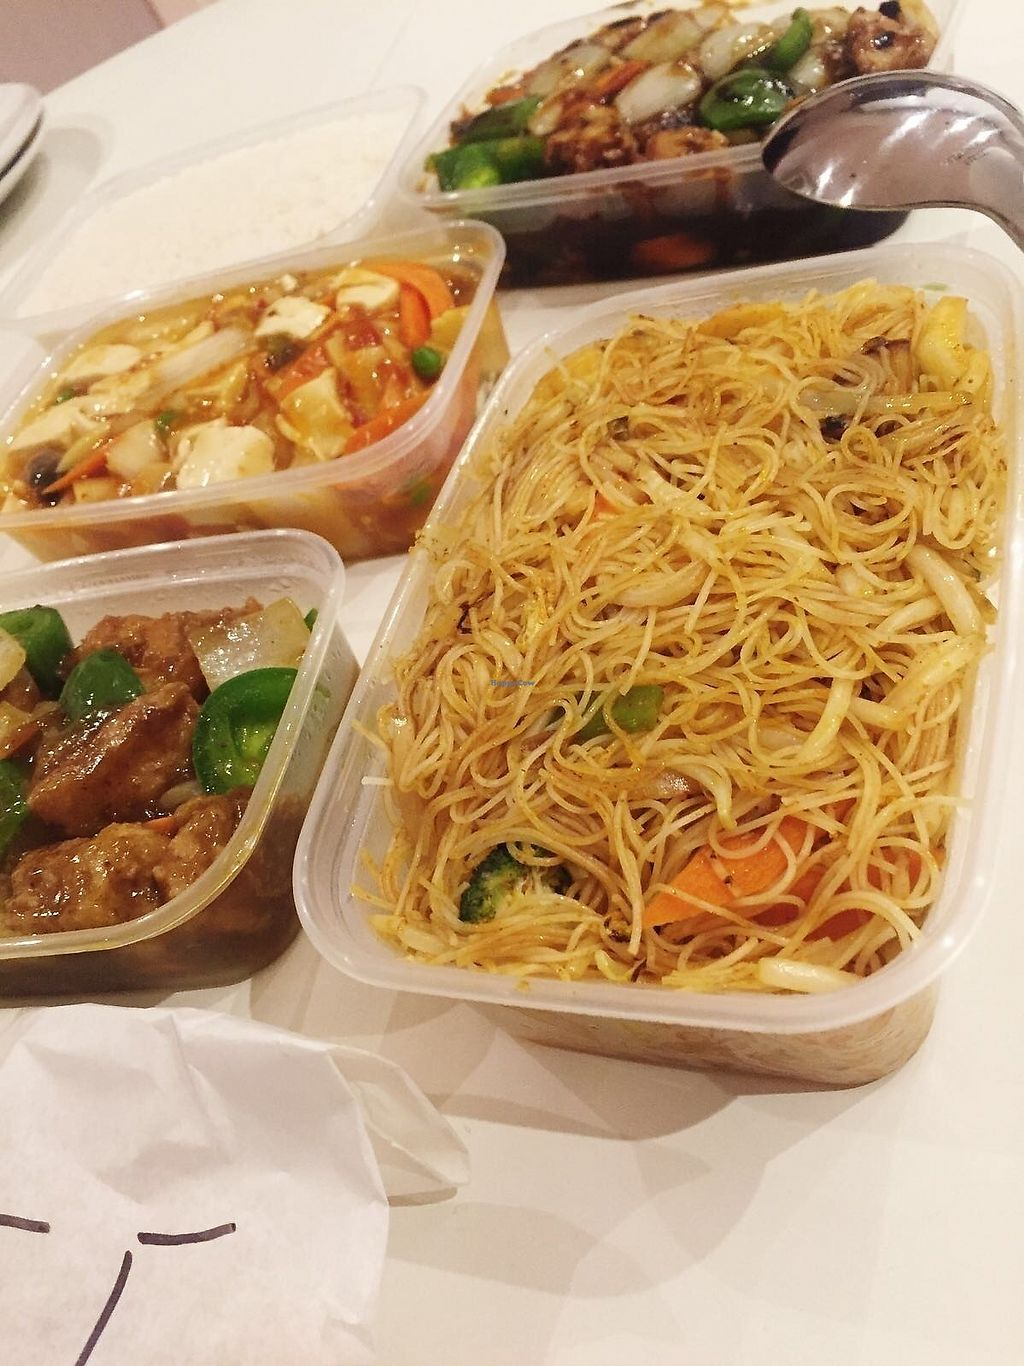 """Photo of New Happy Palace   by <a href=""""/members/profile/TARAMCDONALD"""">TARAMCDONALD</a> <br/>Spicy vegan noodles with veggies, black bean mock chicken and satay chicken <br/> December 12, 2017  - <a href='/contact/abuse/image/99866/334874'>Report</a>"""